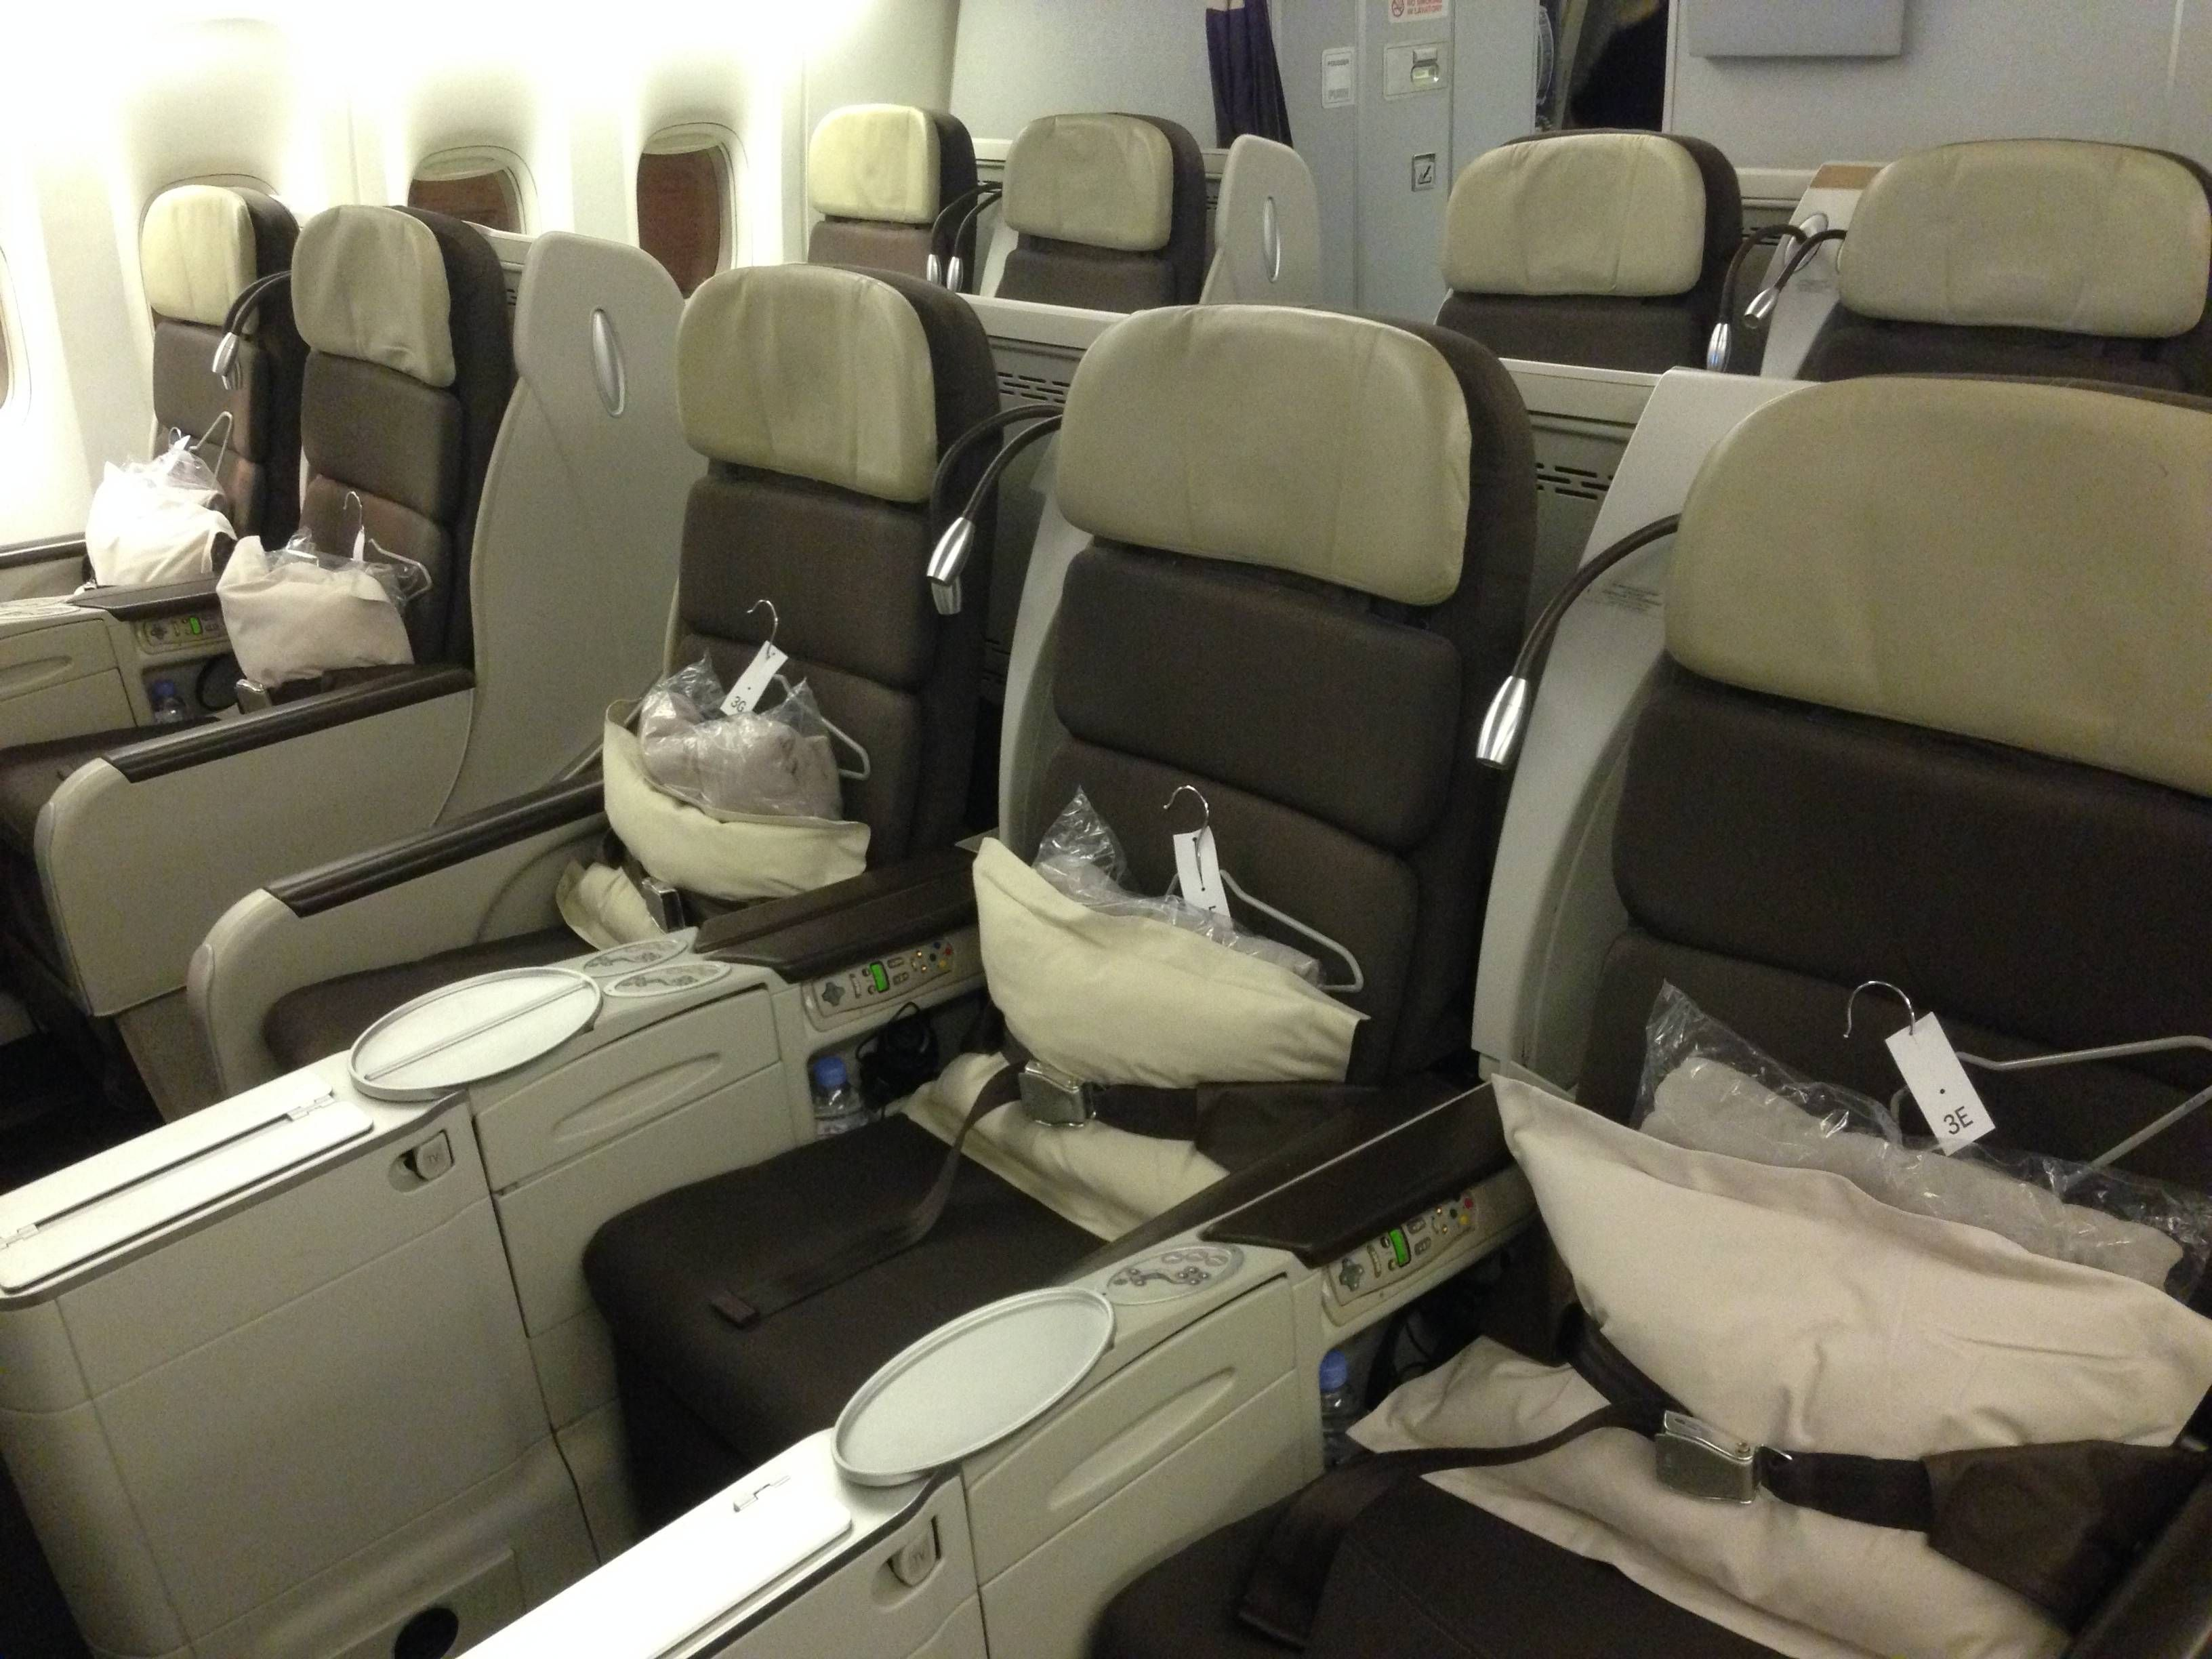 Classe Executiva Da Air France No Boeing 777 300er